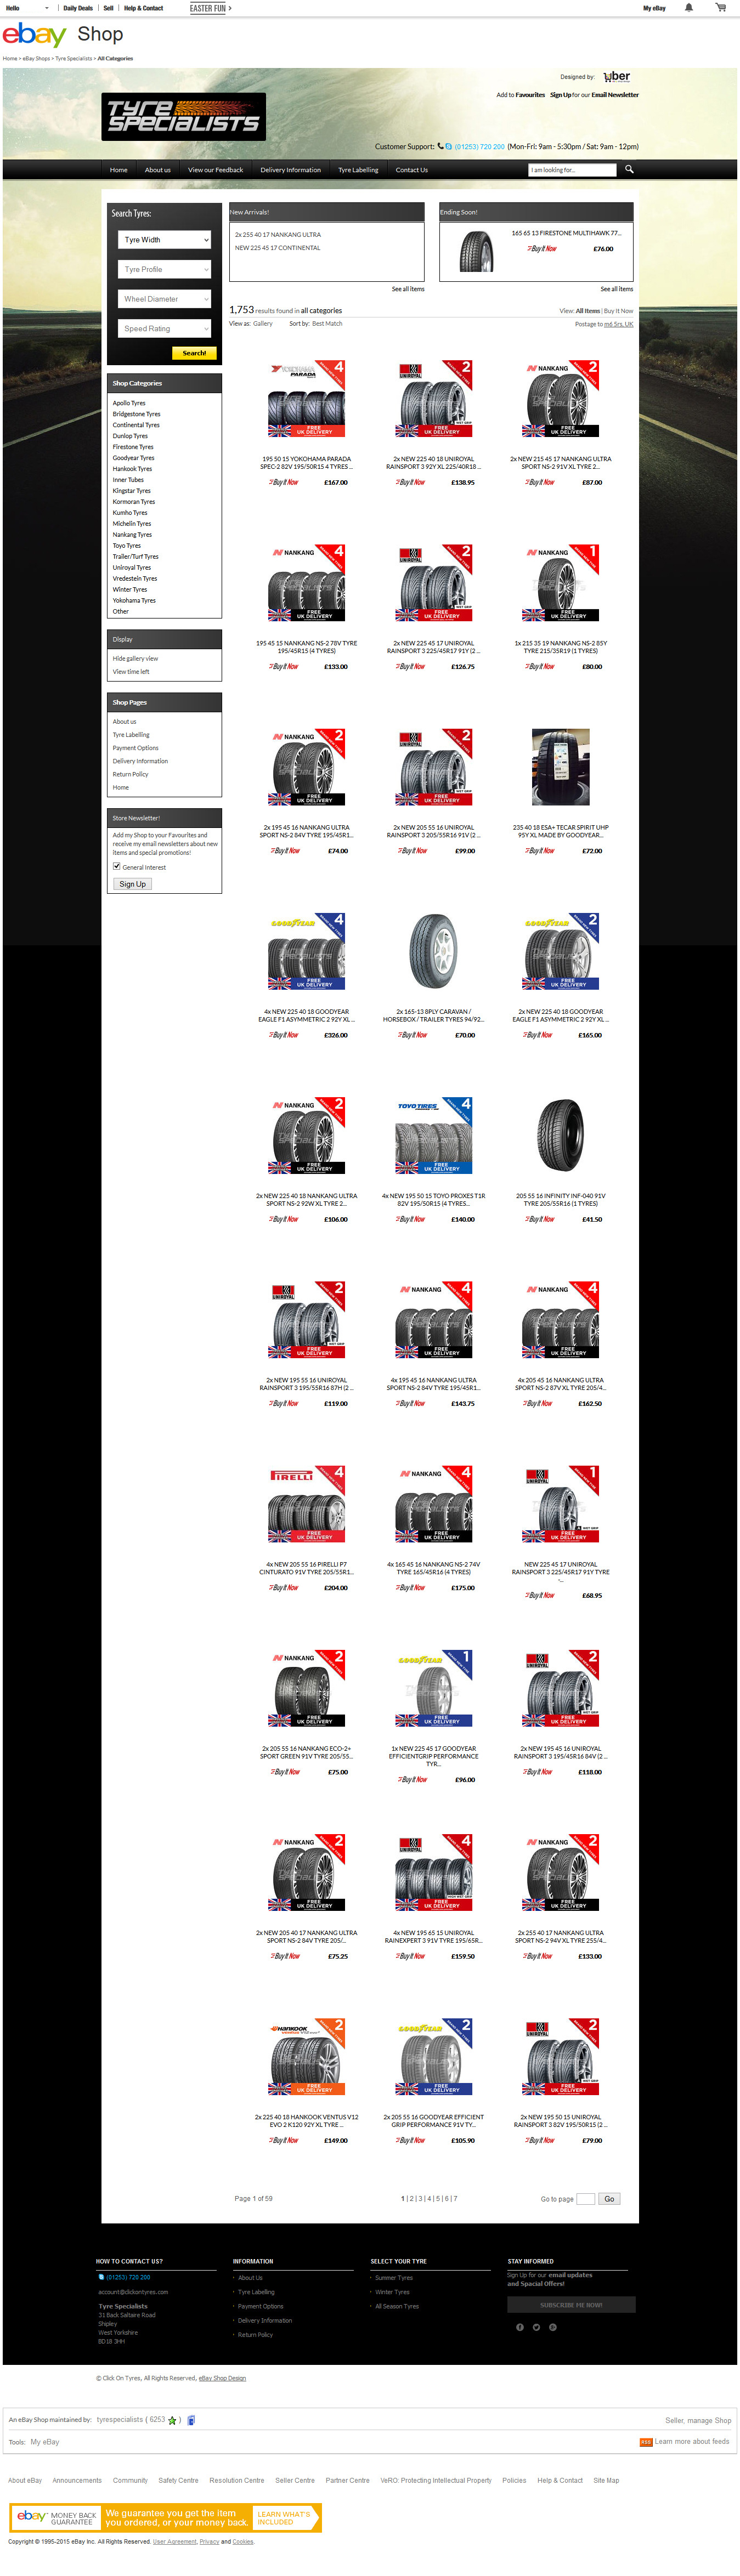 Tyre Specialists ebay category design